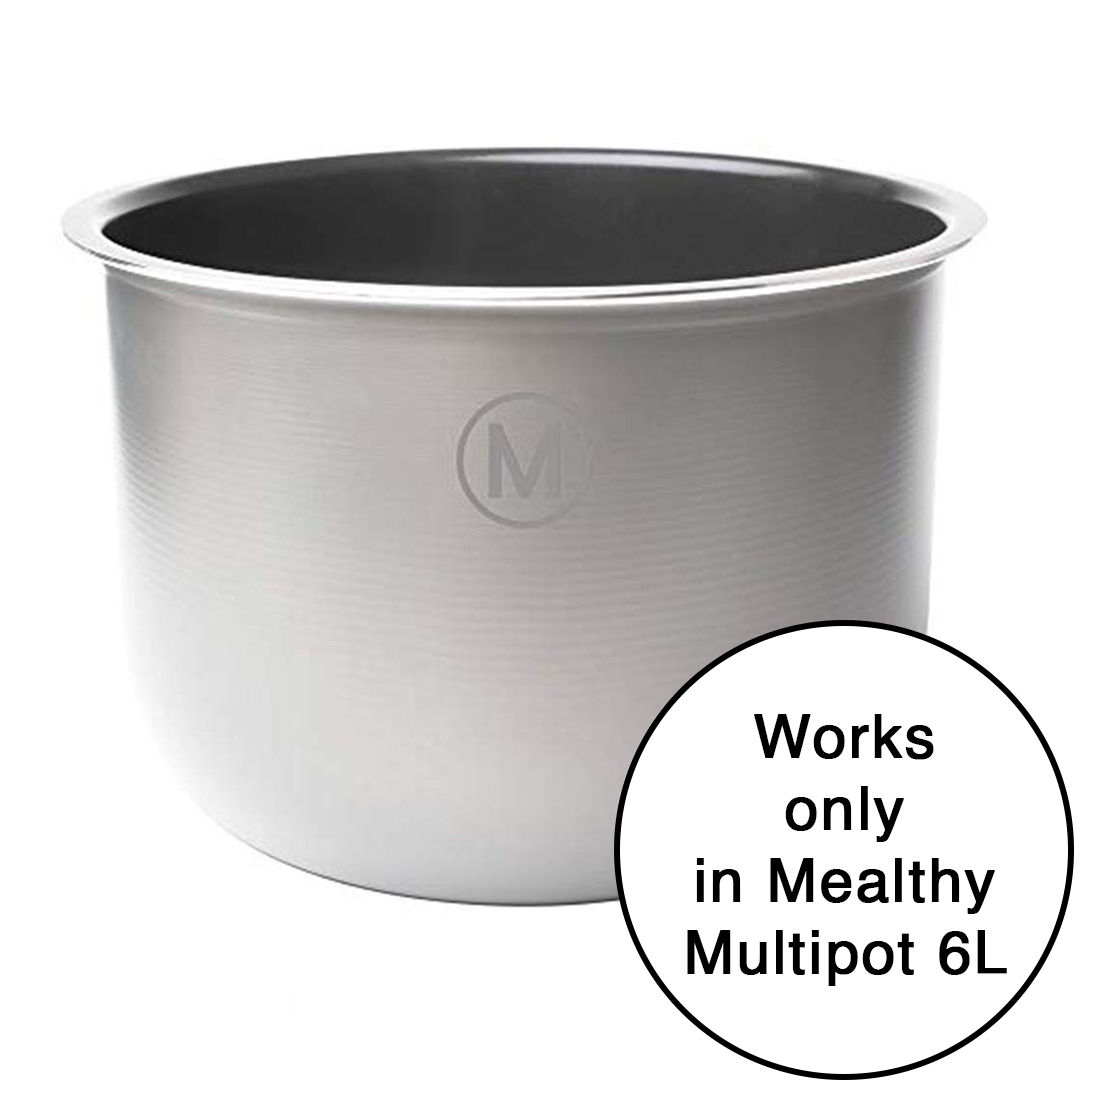 Stainless Steel Pot for 6 Litre MultiPot